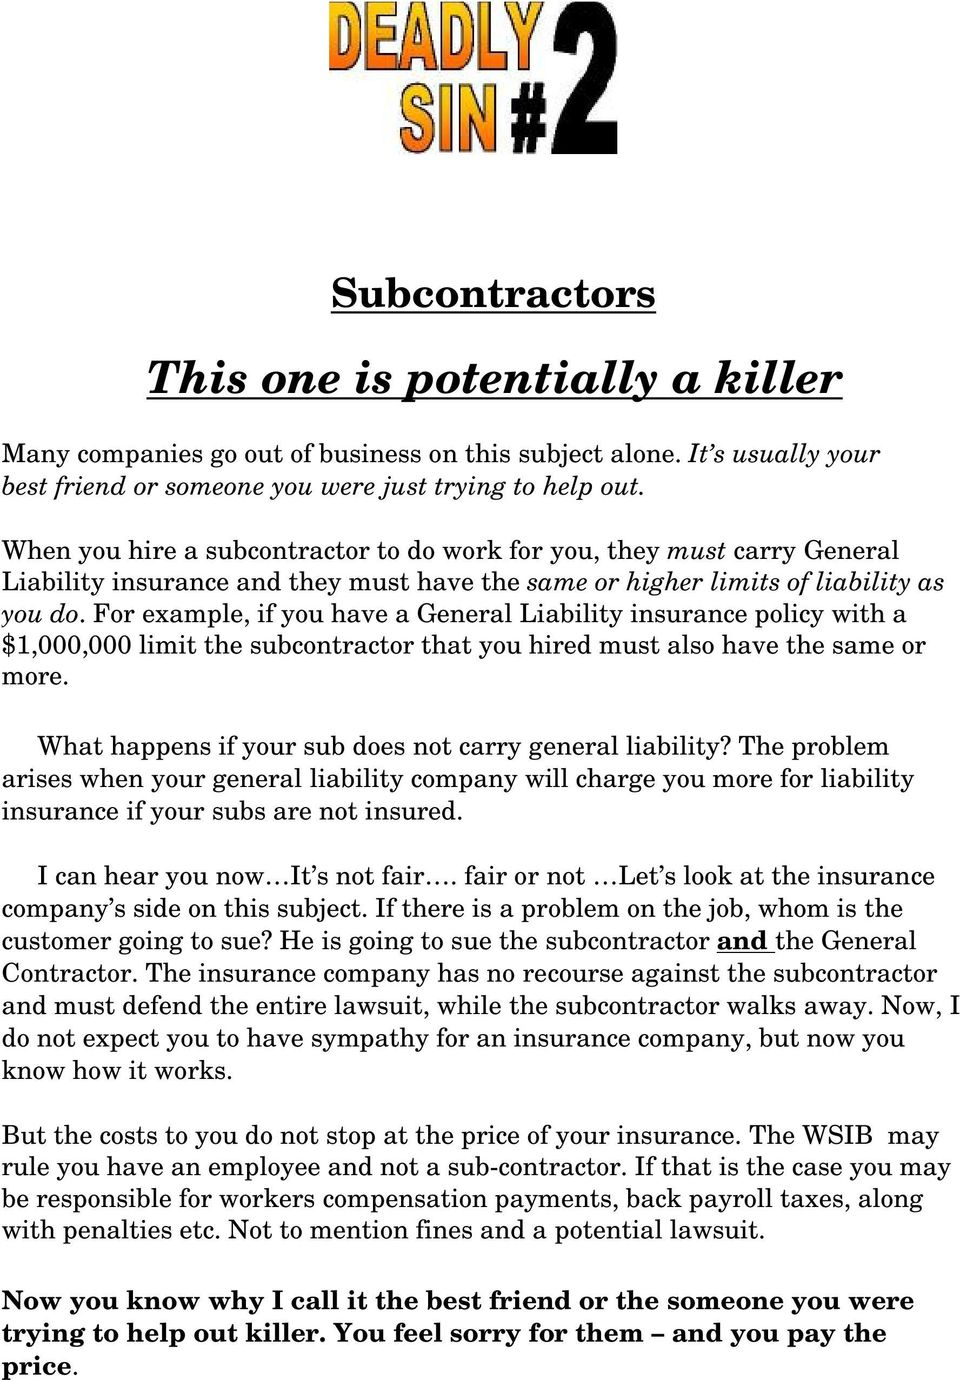 For example, if you have a General Liability insurance policy with a $1,000,000 limit the subcontractor that you hired must also have the same or more.